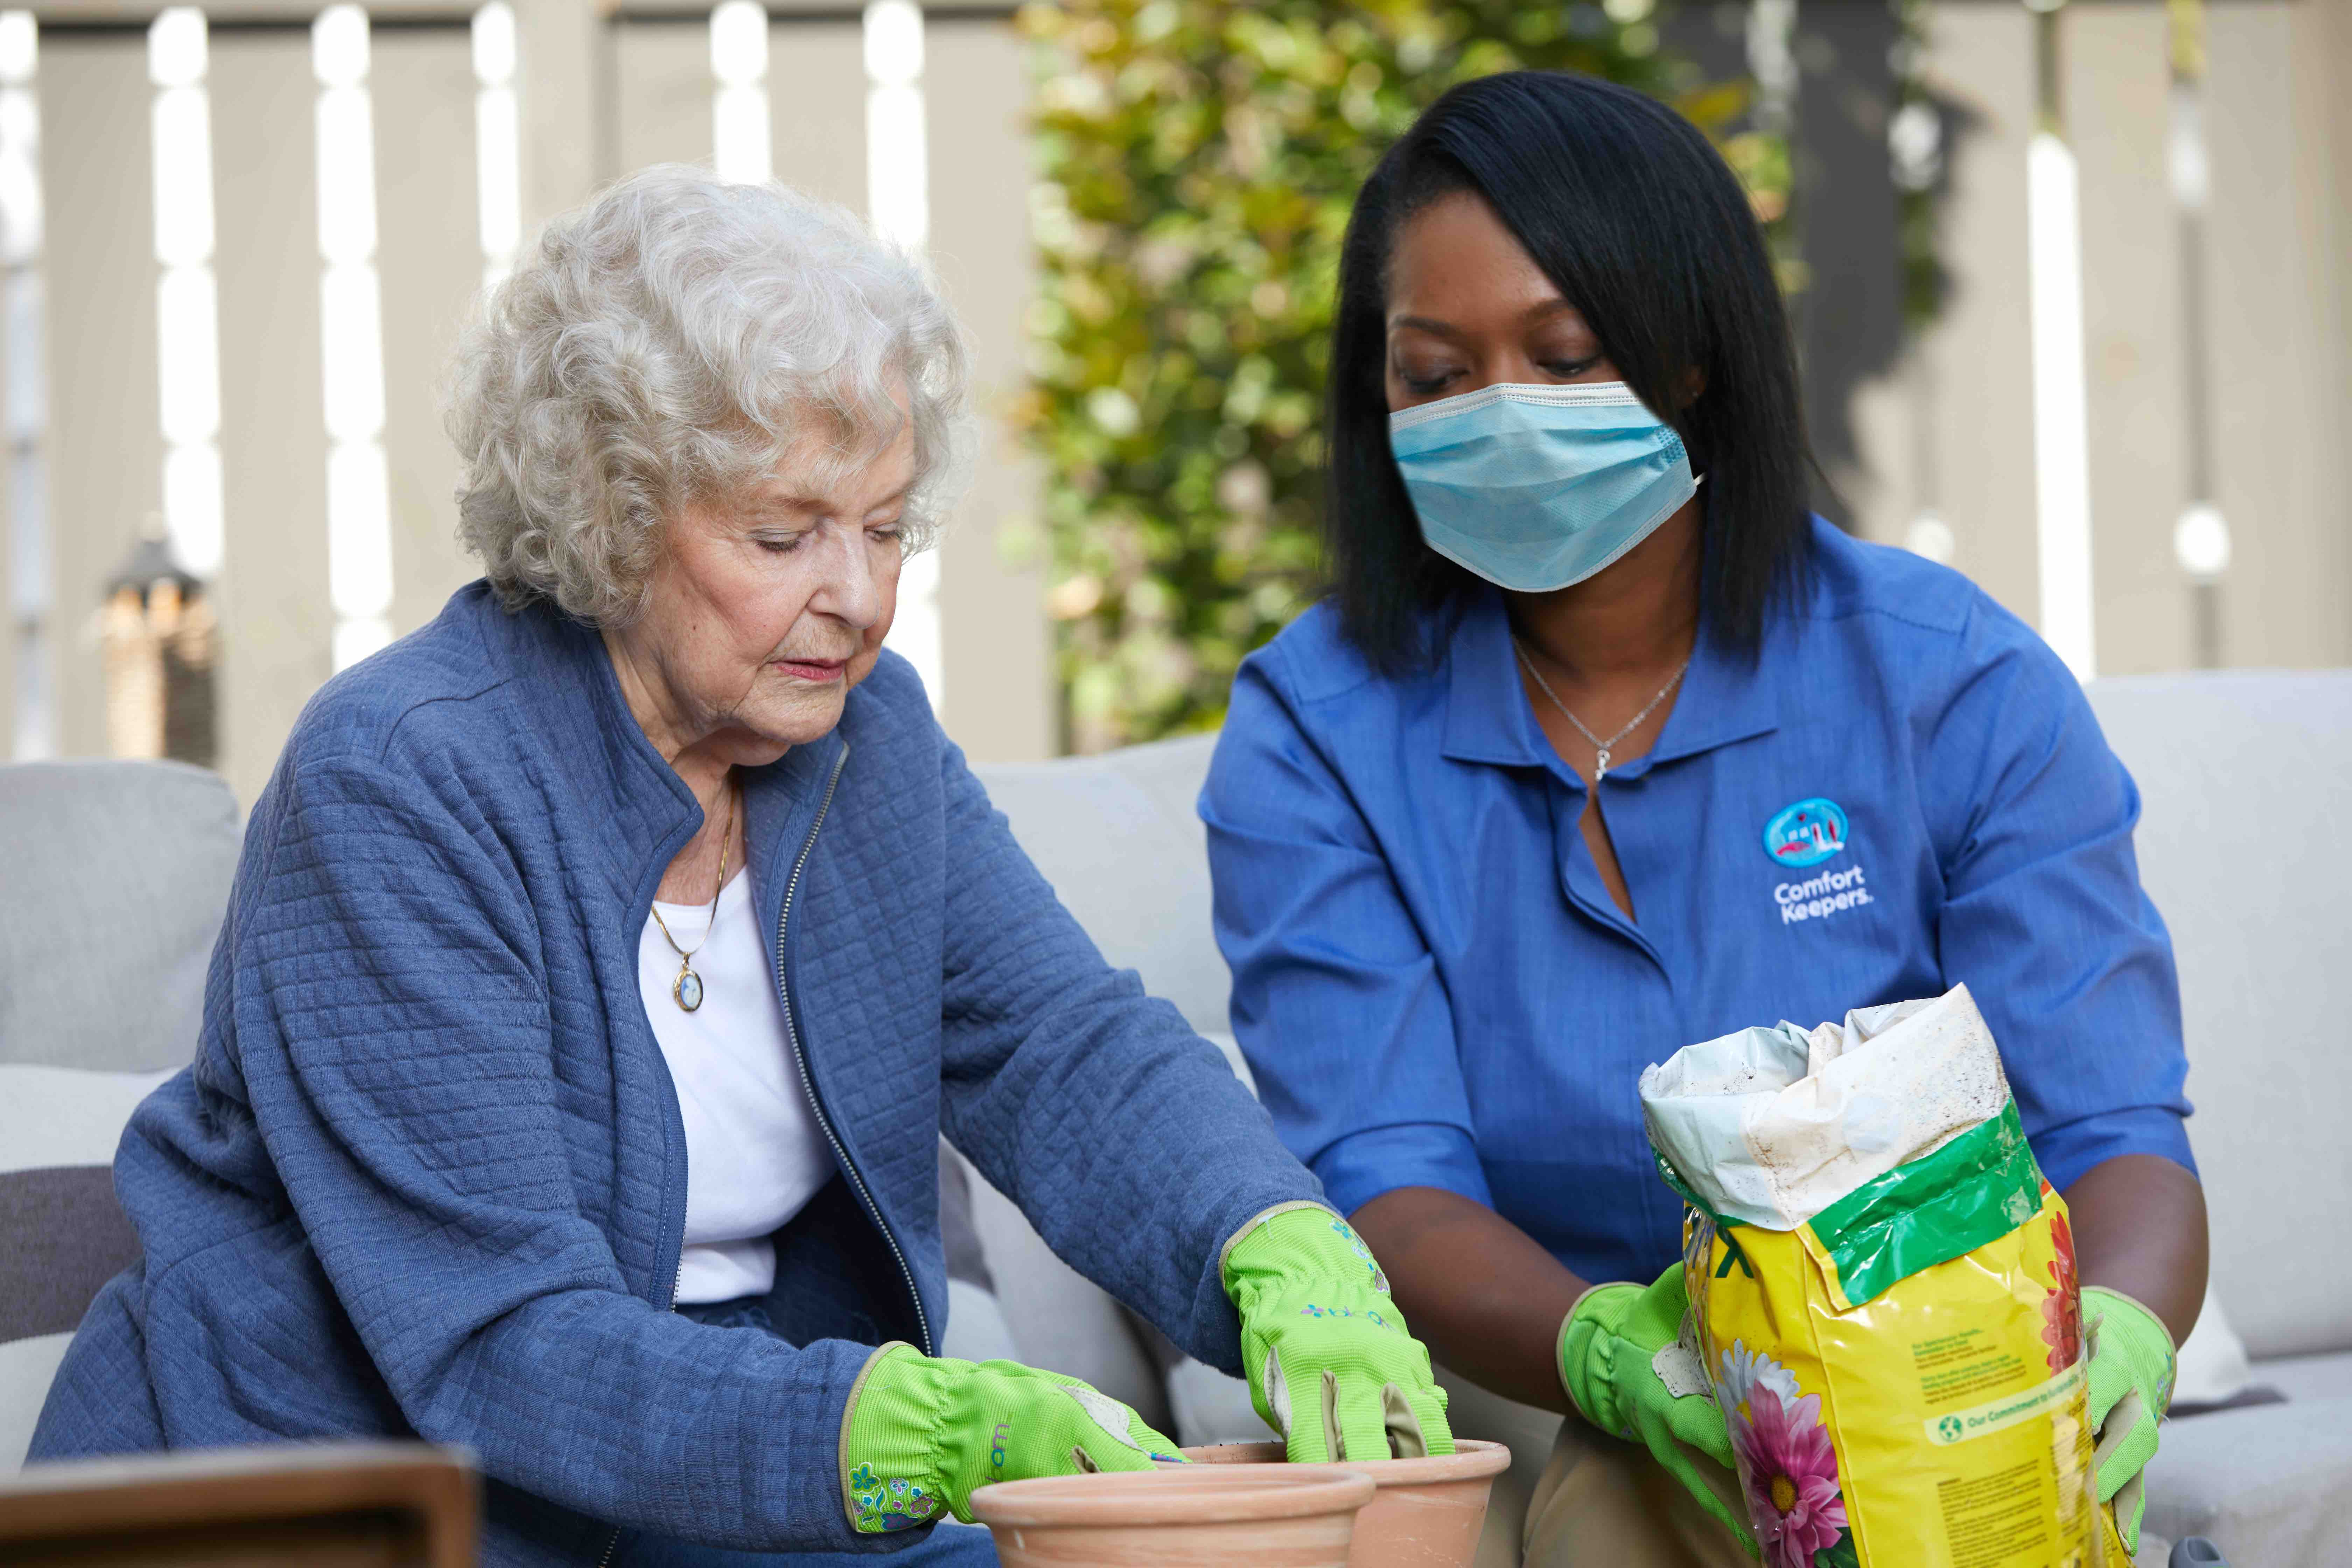 24 hour home care services in Wichita, KS